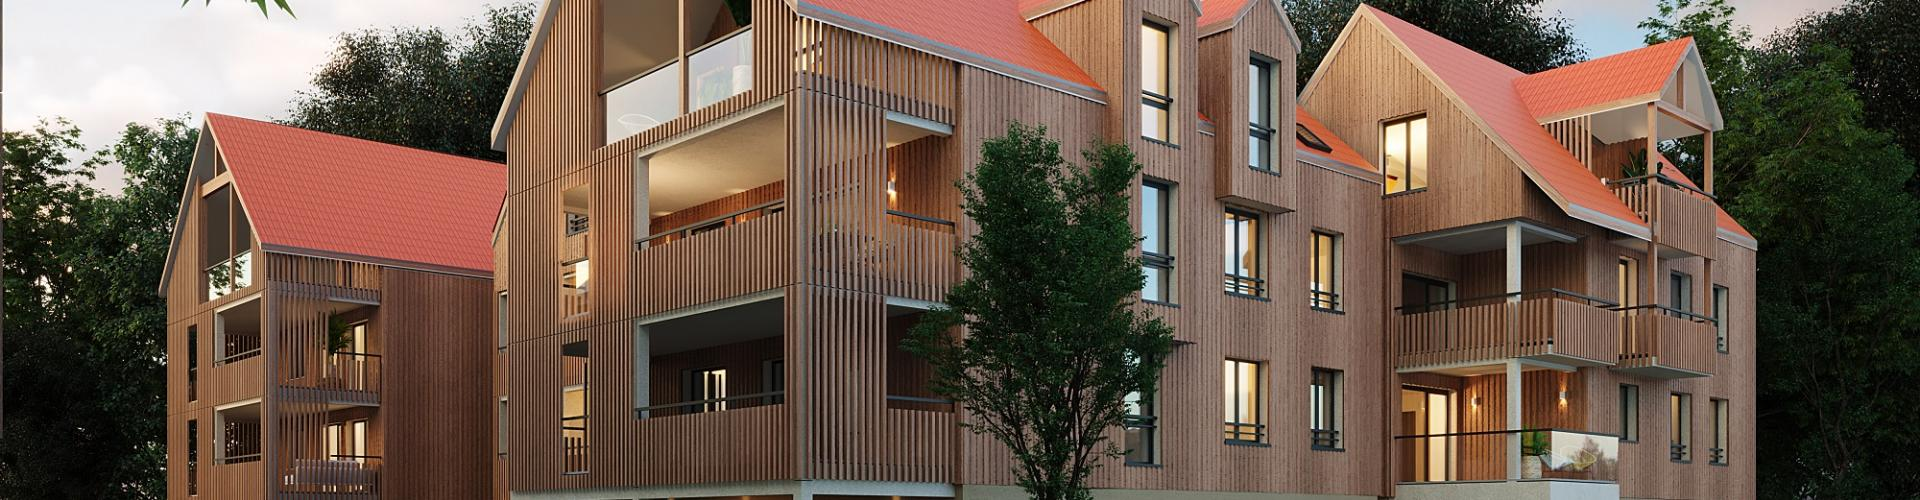 Programme immobilier neuf Obernai - Debussy